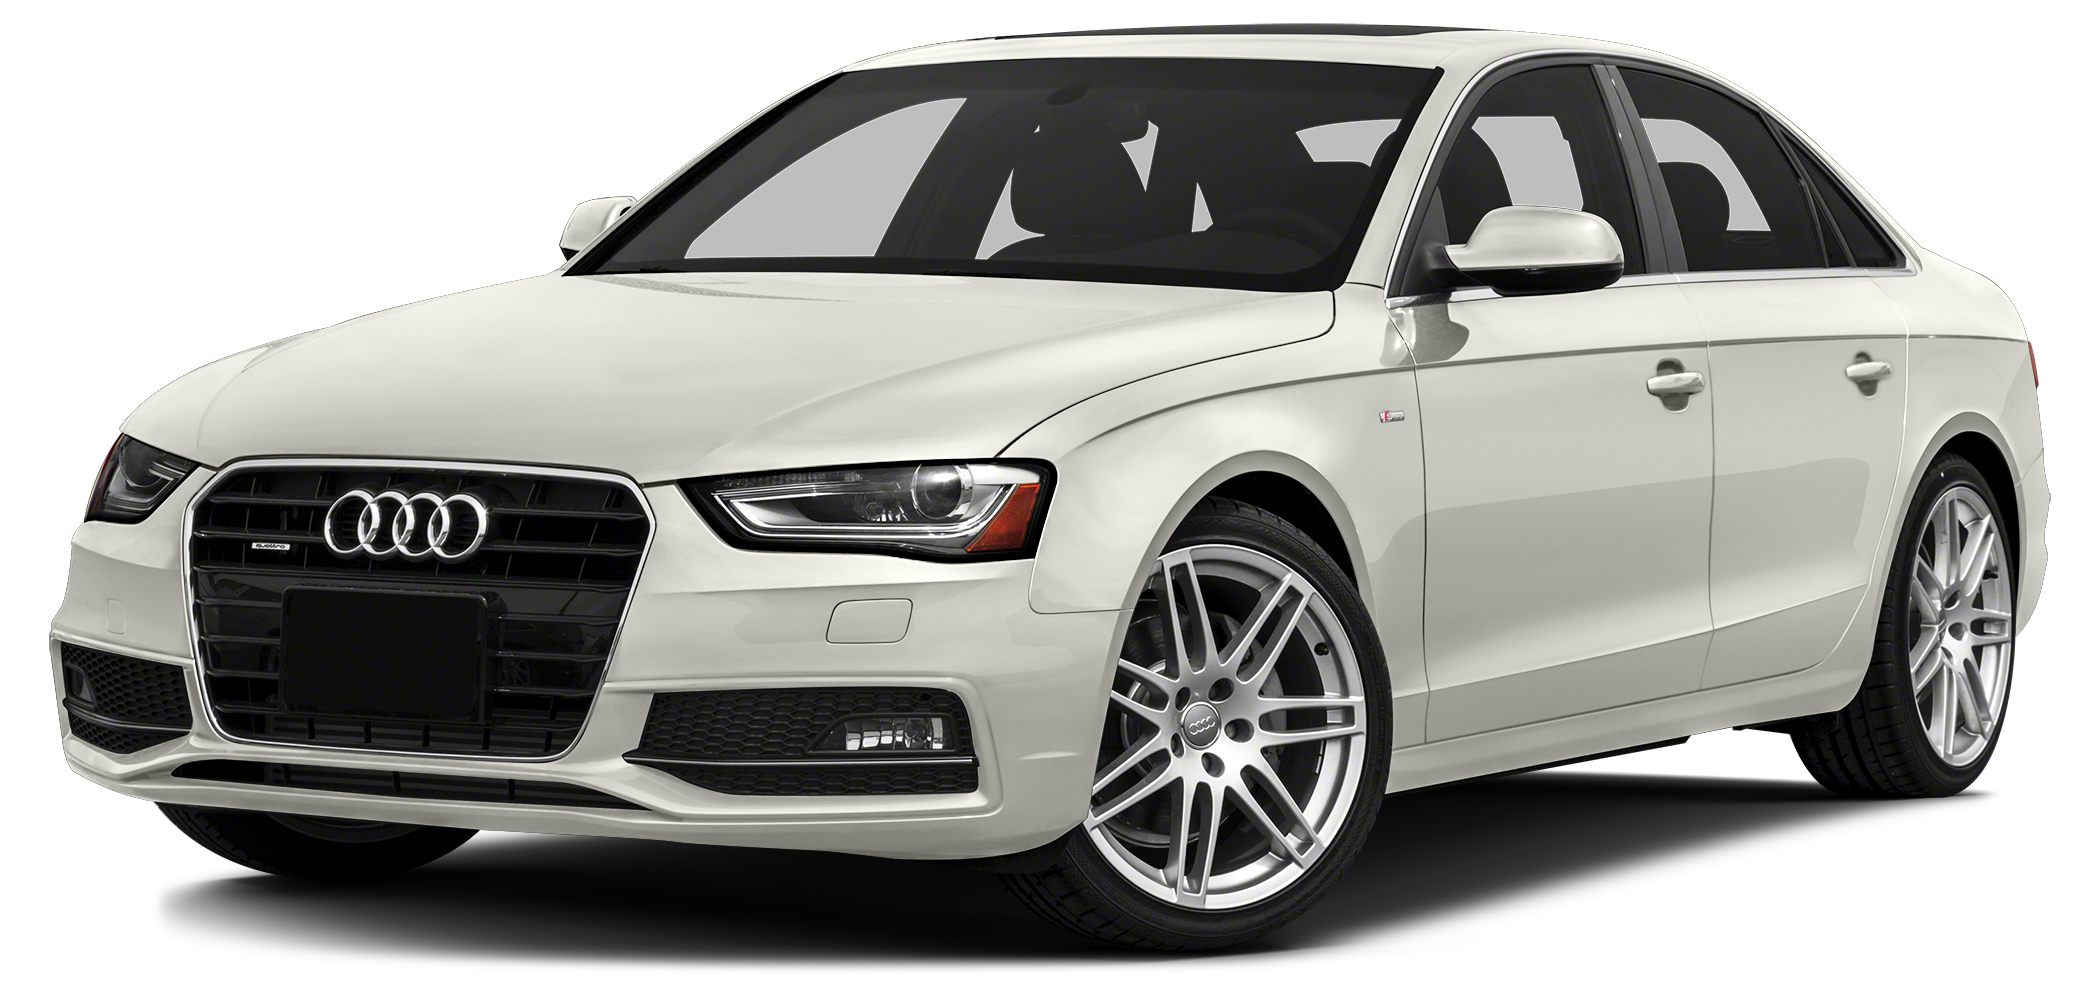 2013 Audi A4 20T Premium NICE A4 WHITE WITH BROWN LEATHER GARAGE KEPT SERVICE RECORDS DEALER